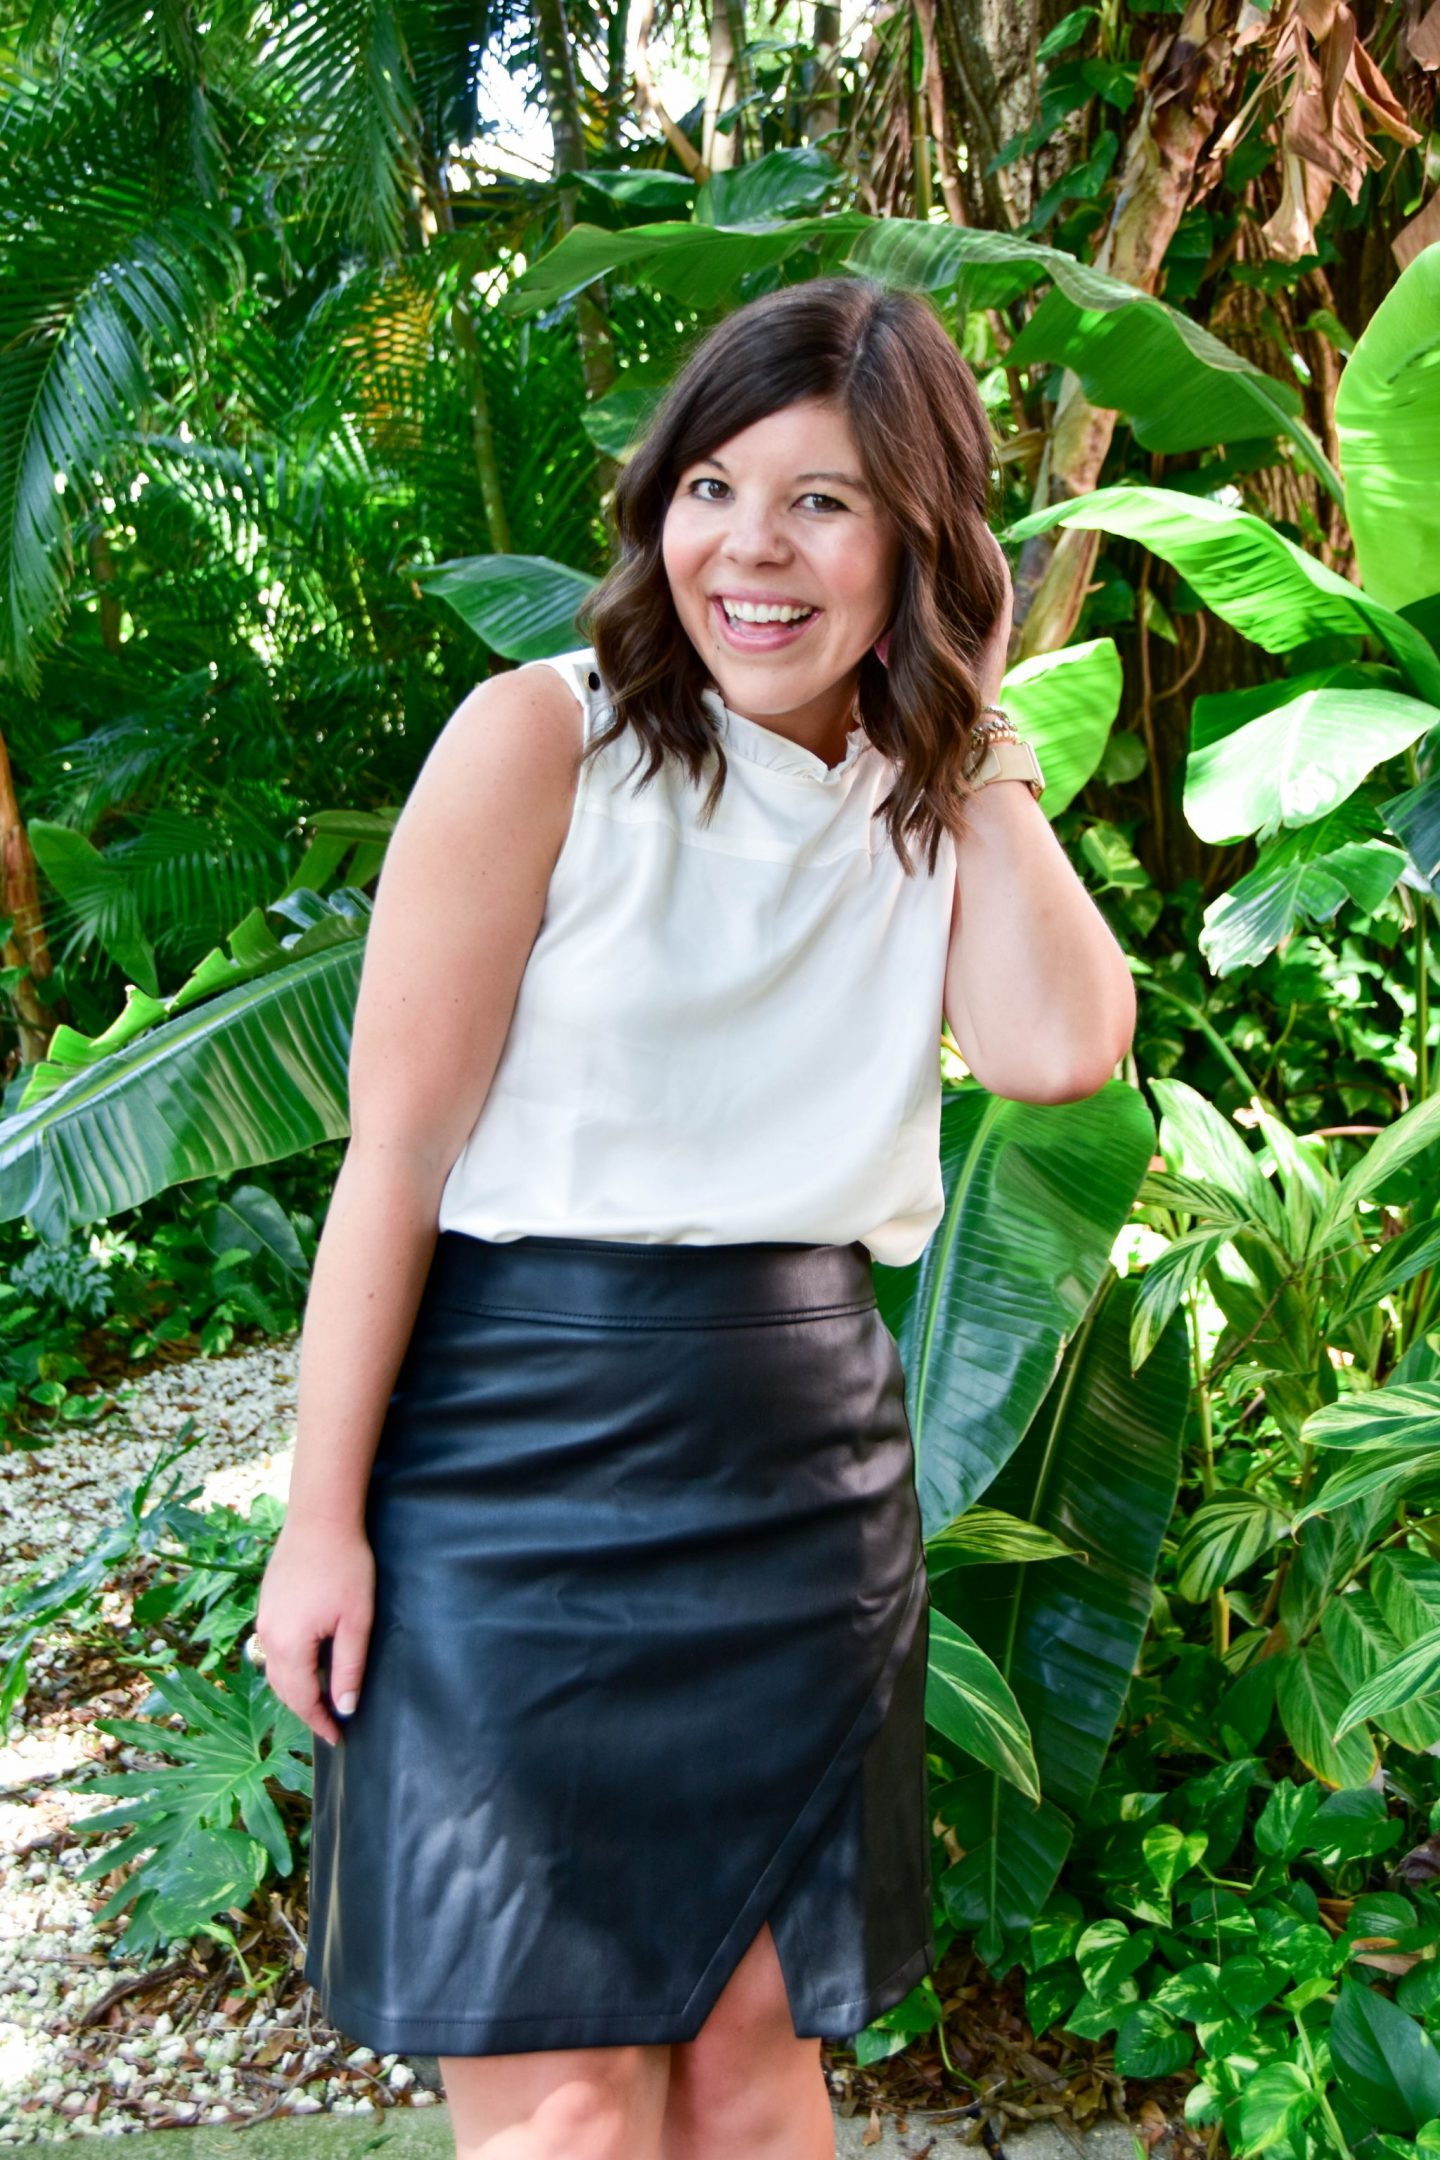 Workweek Chic: Sassy Black Leather Skirt